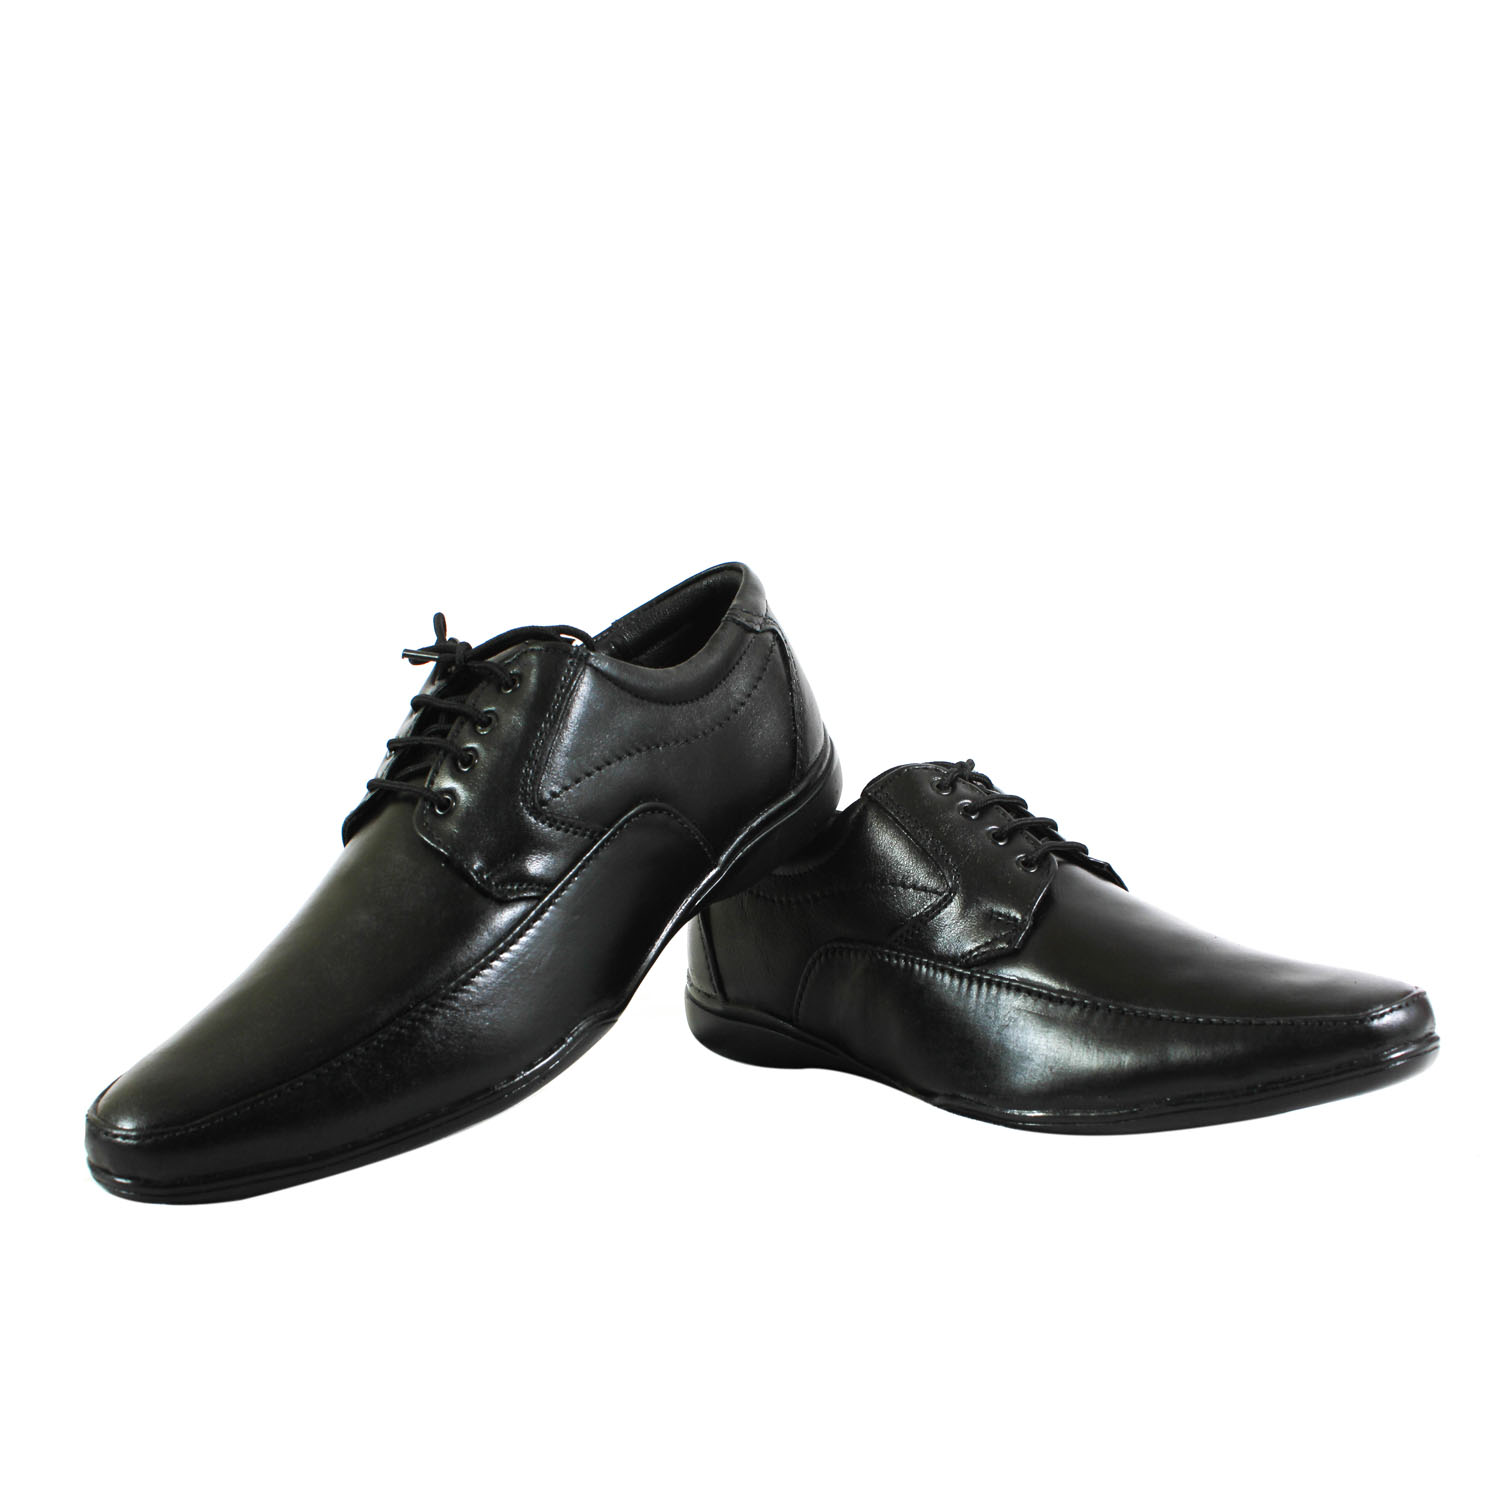 leather king genuine leather formal shoes buy formal